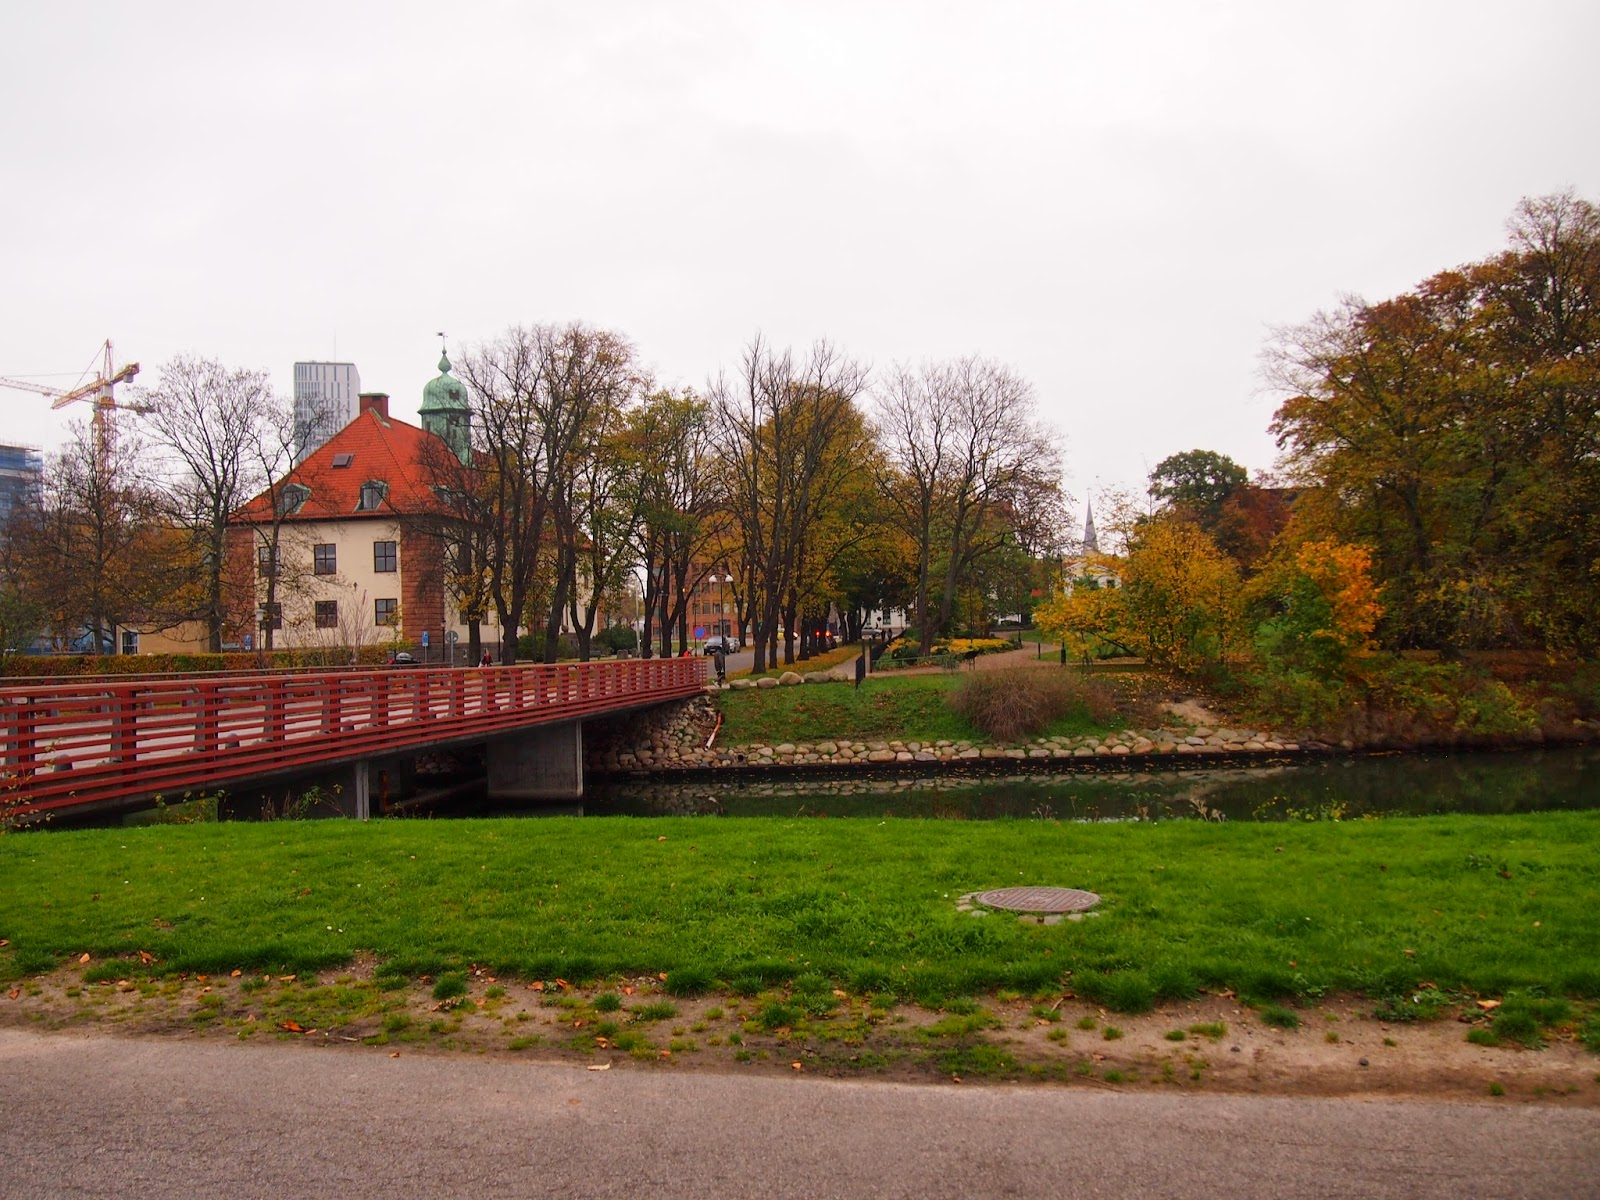 a bridge to the Kings Park in Malmo